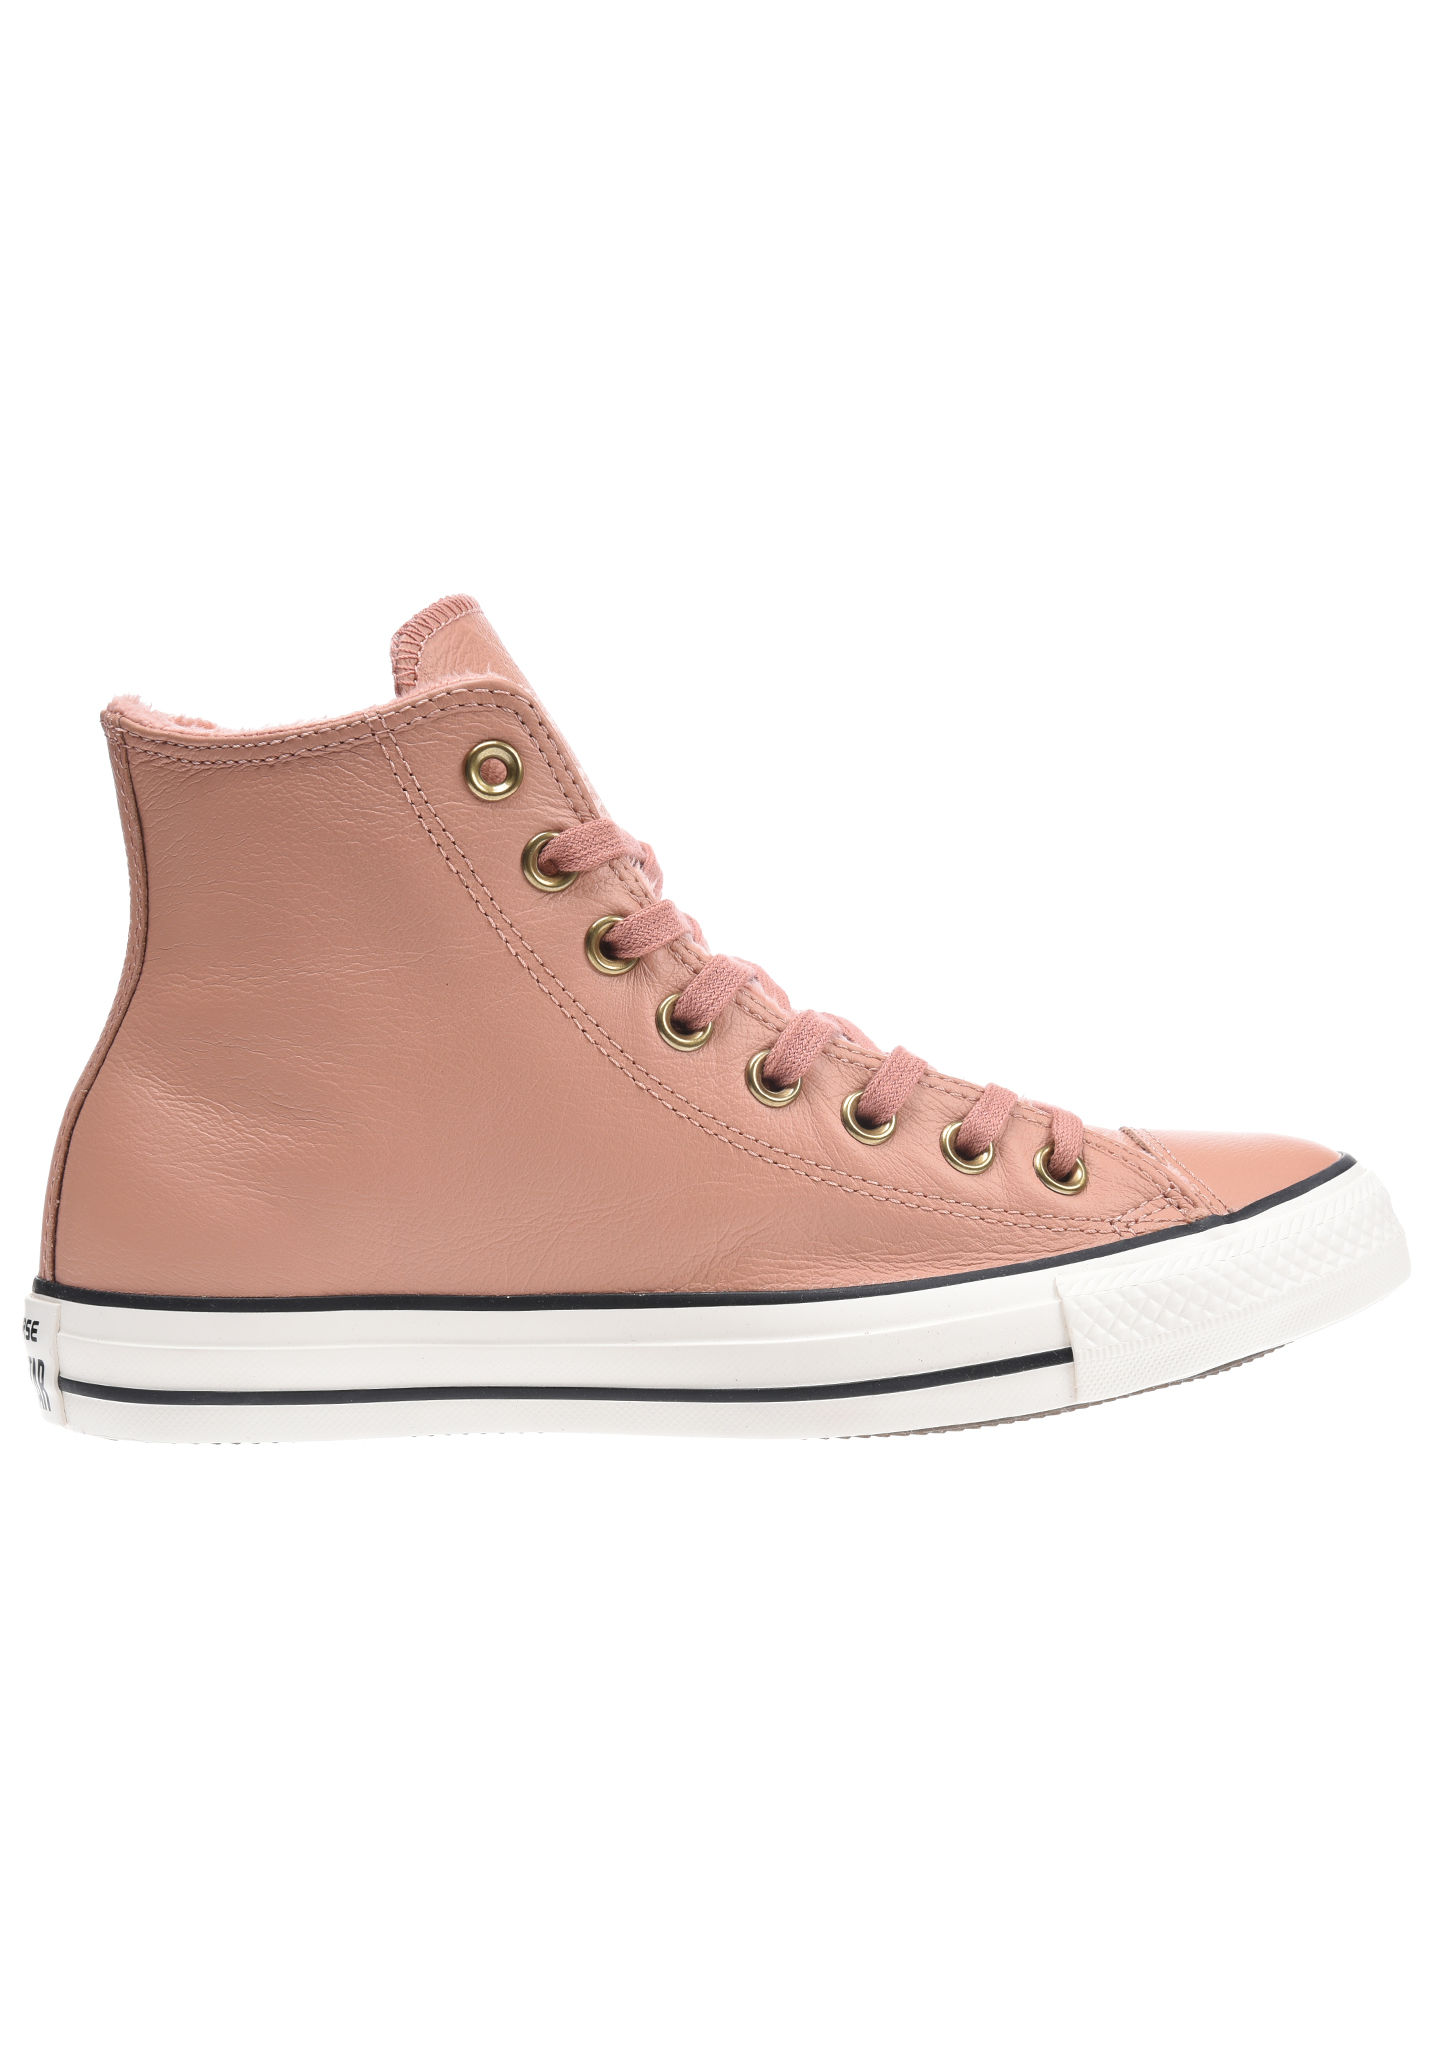 6803f6f0bf36 Converse Chuck Taylor All Star Winter Knit+Fur Hi Lthr - Sneakers for Women  -